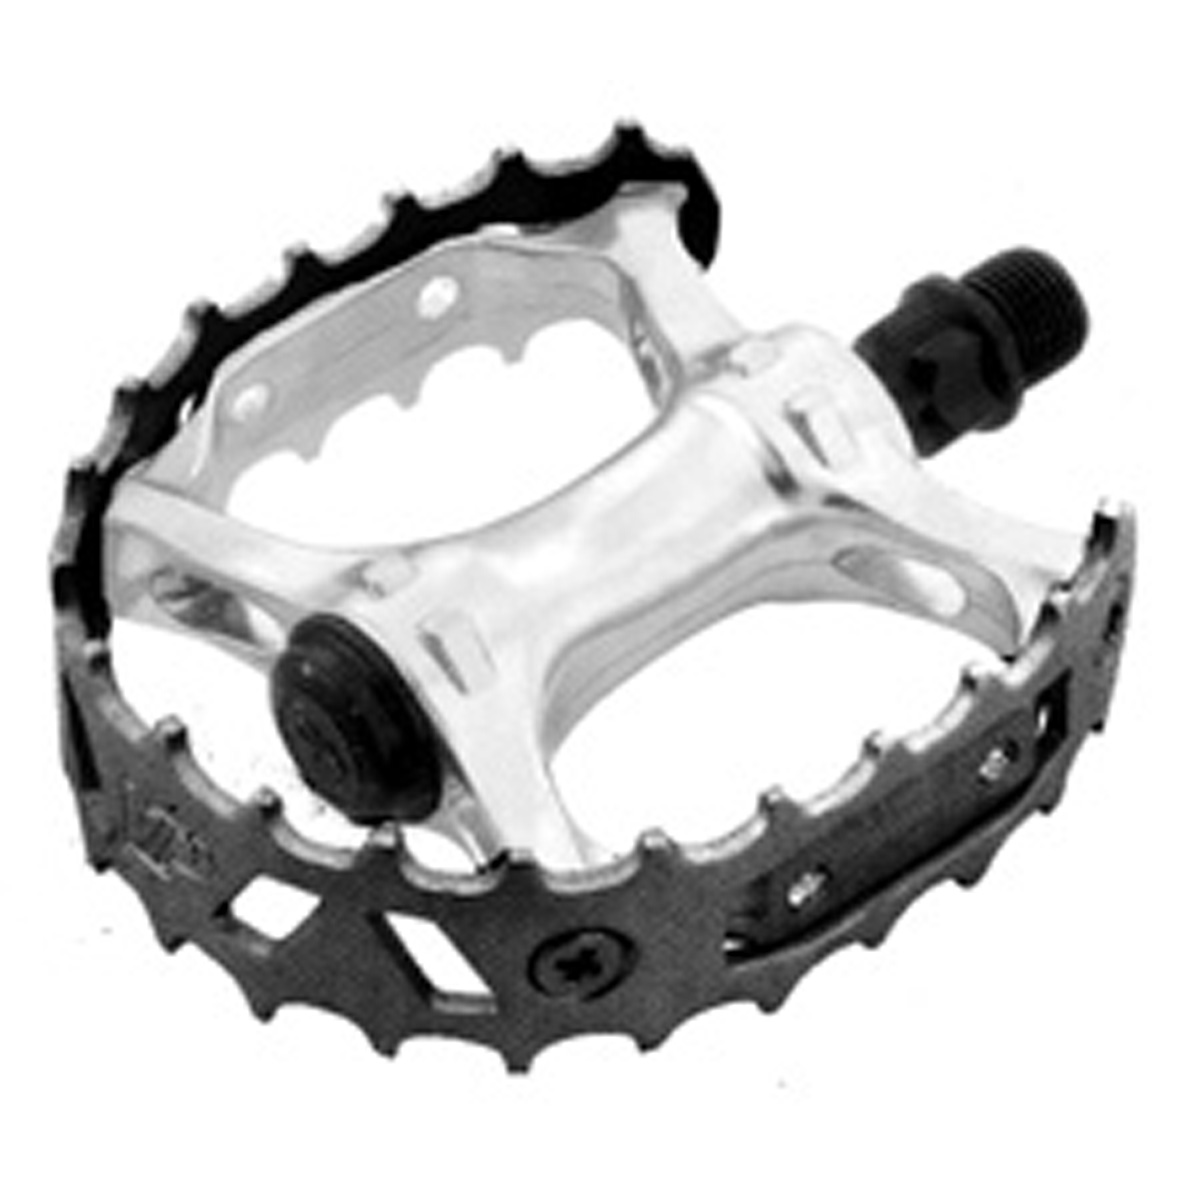 Summit Bearclaw Mountain Bicycle Pedals Walmart Com